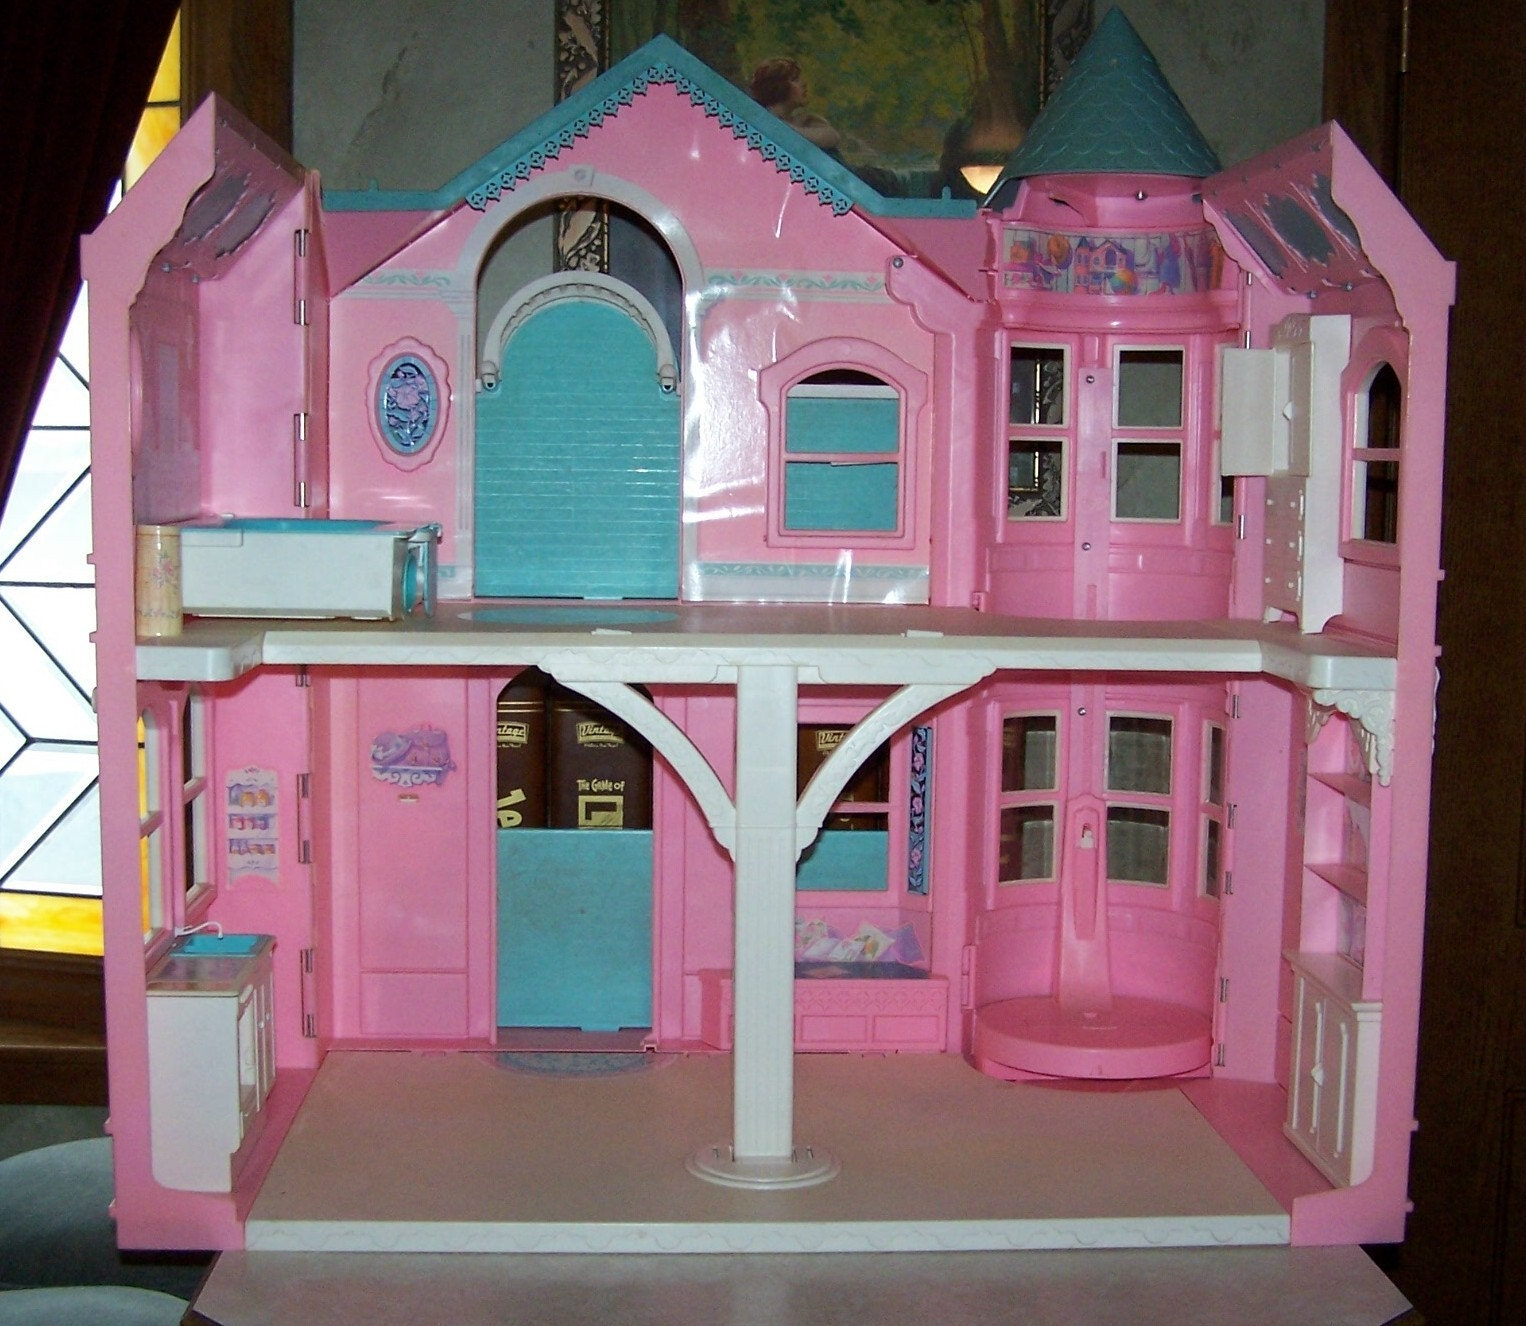 a doll house his story is In a doll's house, dr rank is a friend of torvald helmer who comes to the house every day to visit him, and also see torvald's wife nora when he confesses his love.